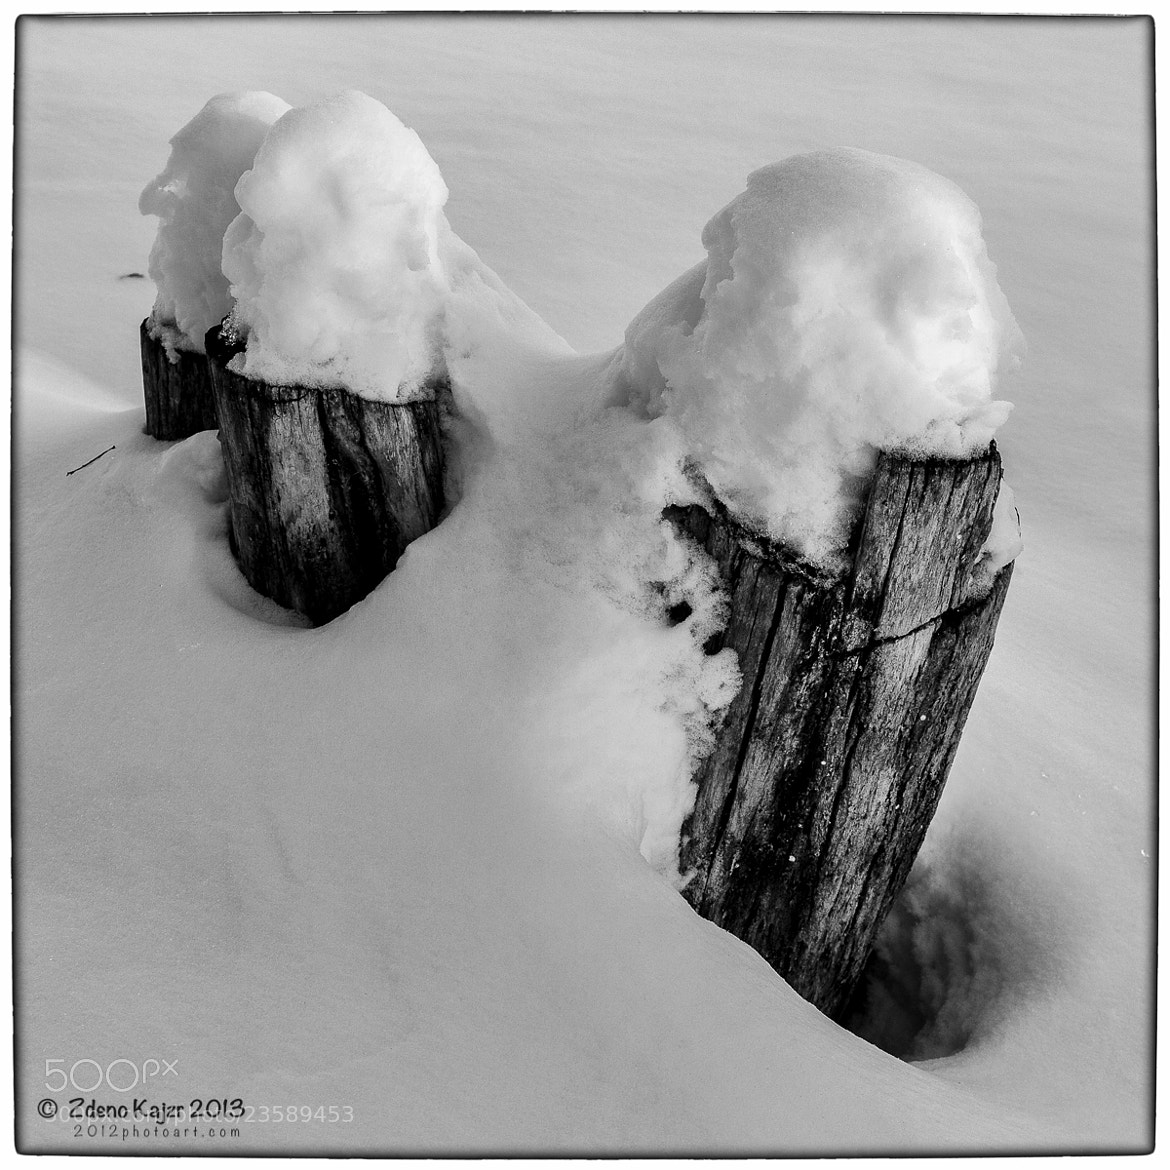 Photograph Framing snowy landscape (2) by Zdeno Kajzr on 500px